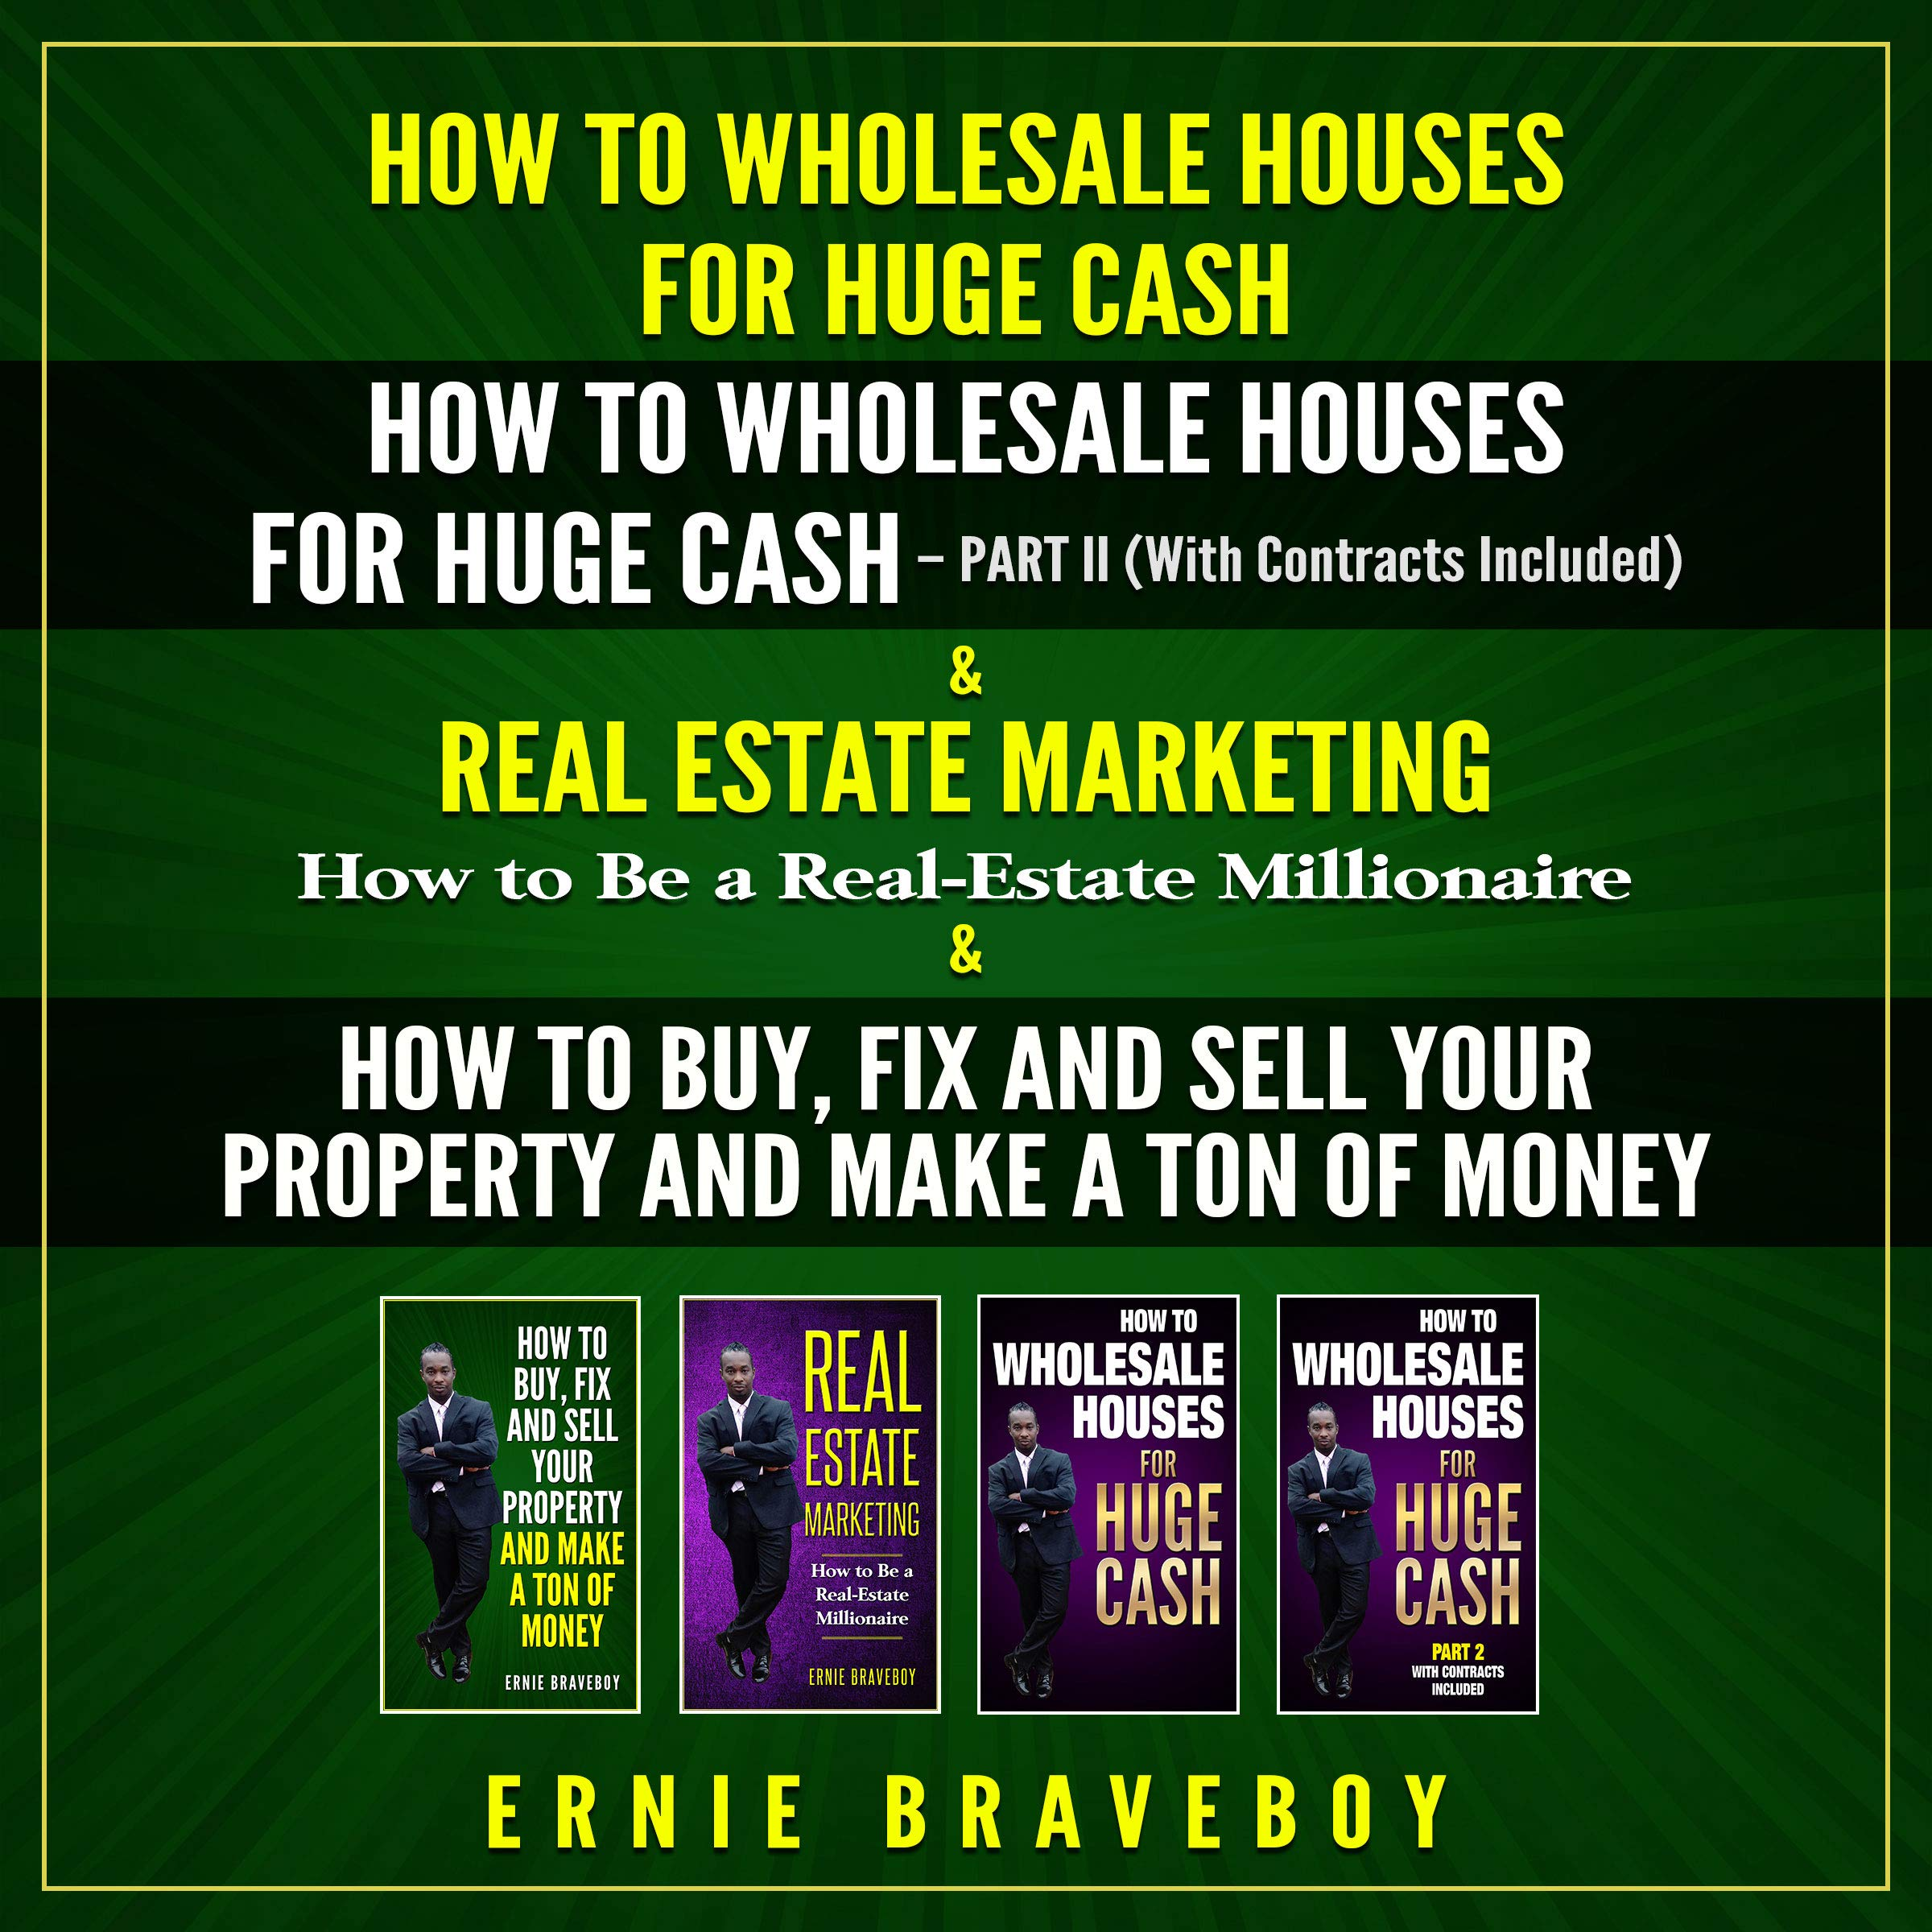 How to Wholesale Houses for Huge Cash, Part I and Part II. Real Estate Marketing (How to Be a Real Estate Millionaire) and How to Buy, Fix, and Sell Your Property and Make a Ton of Money.